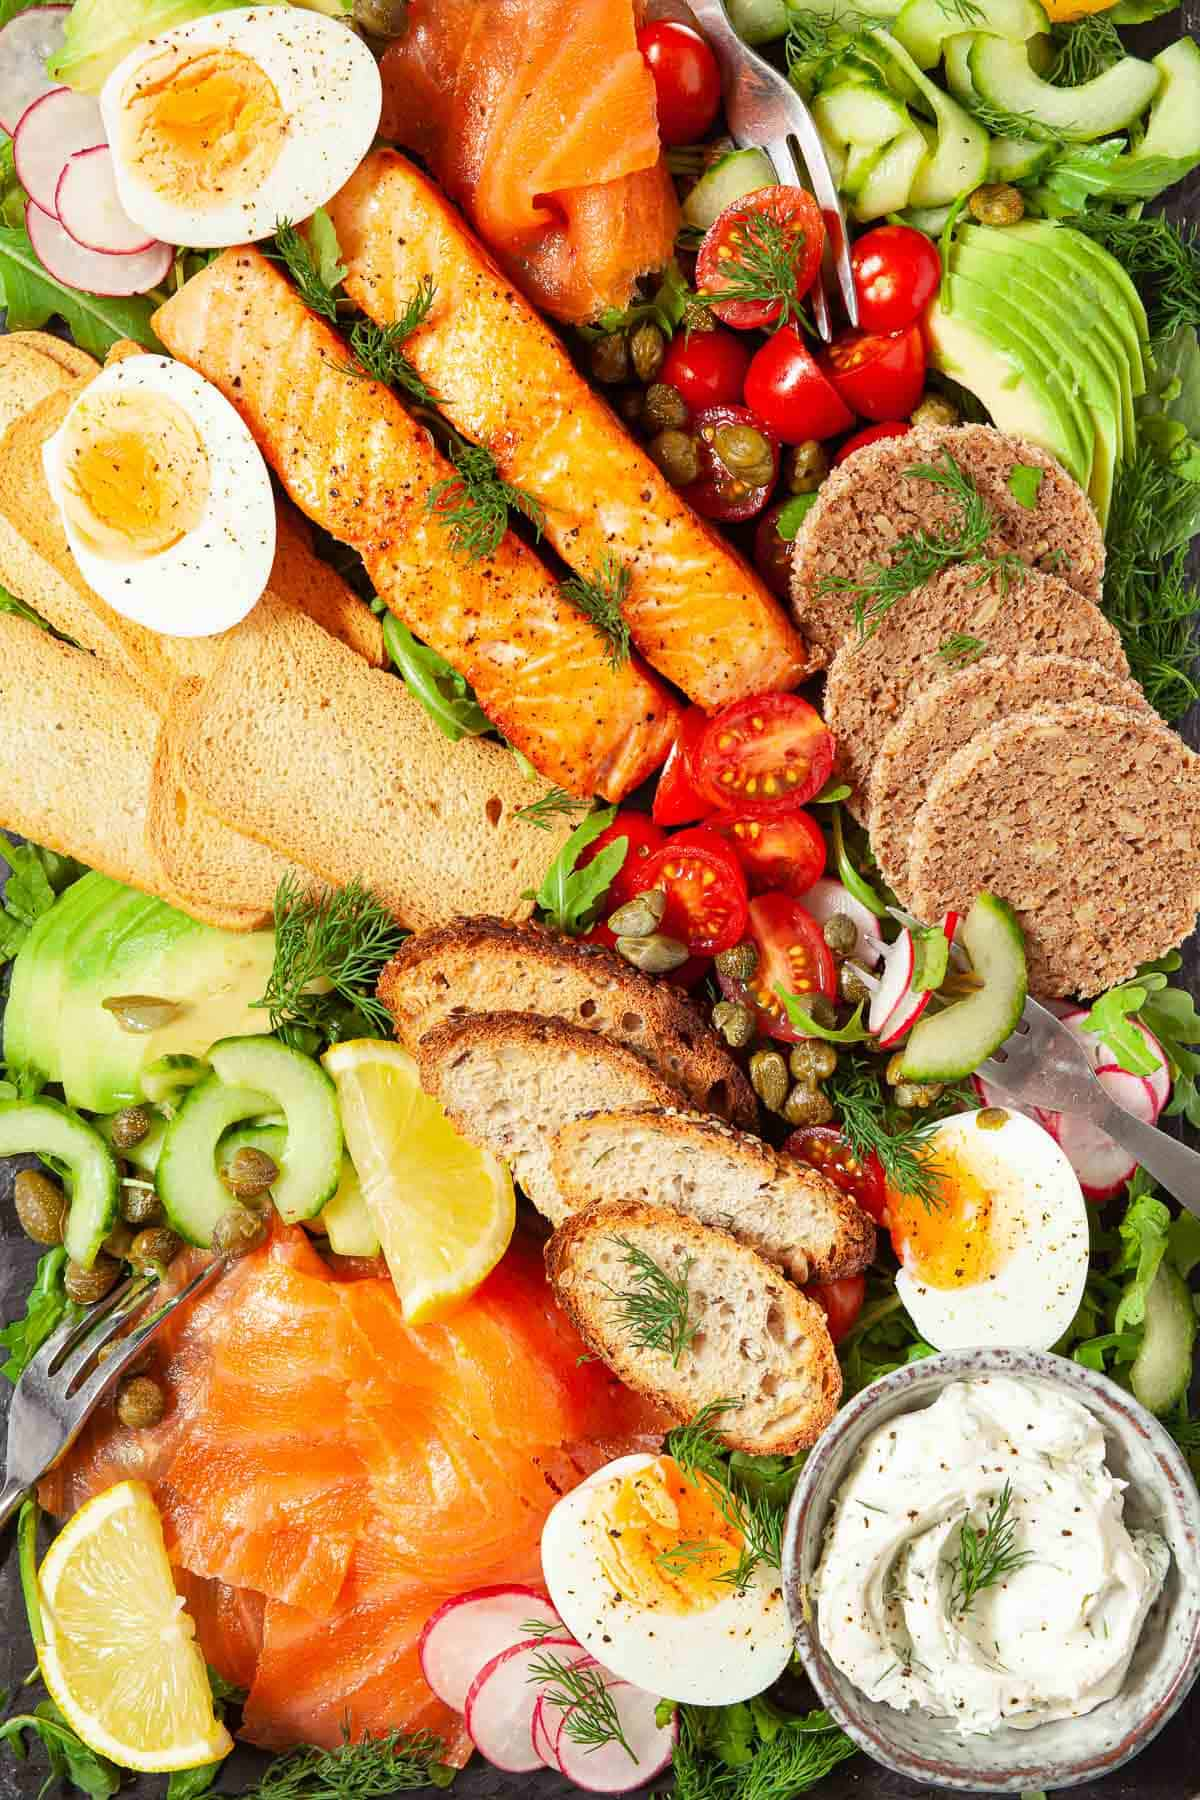 Close up of a salmon breakfast platter with eggs, vegetables and toasts